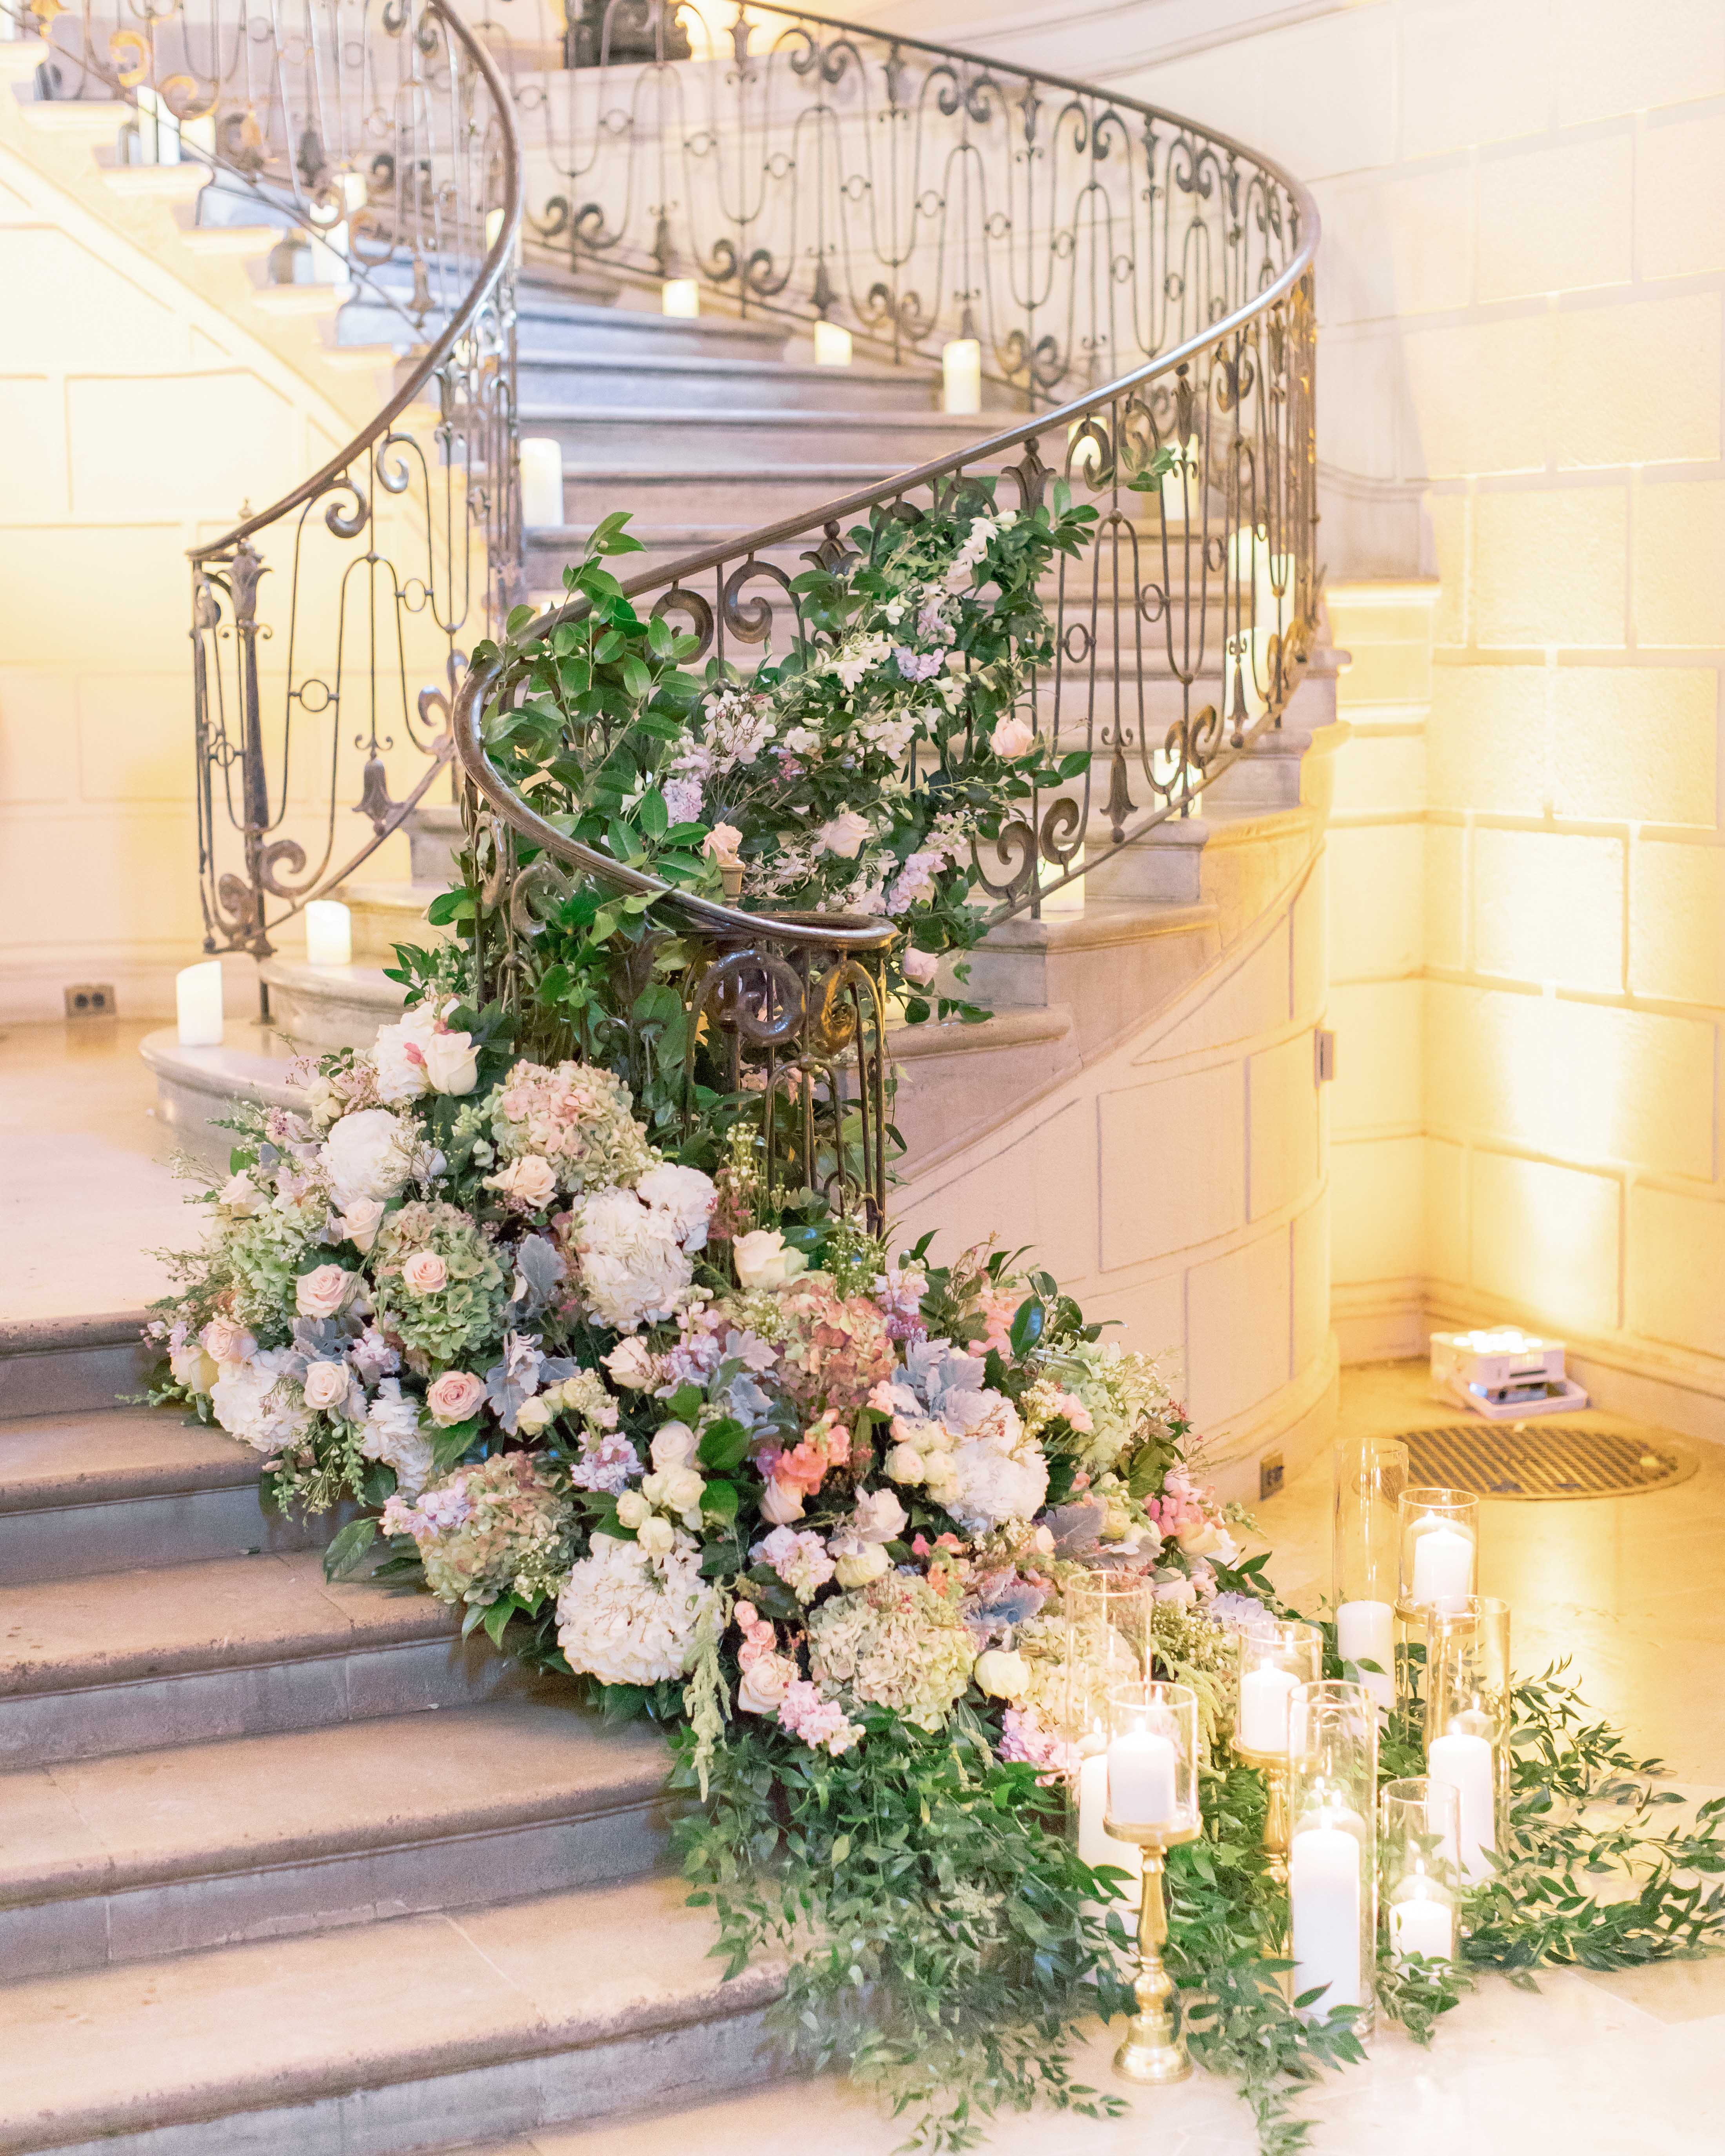 winding stair banister decor greenery hydrangea purple blooms